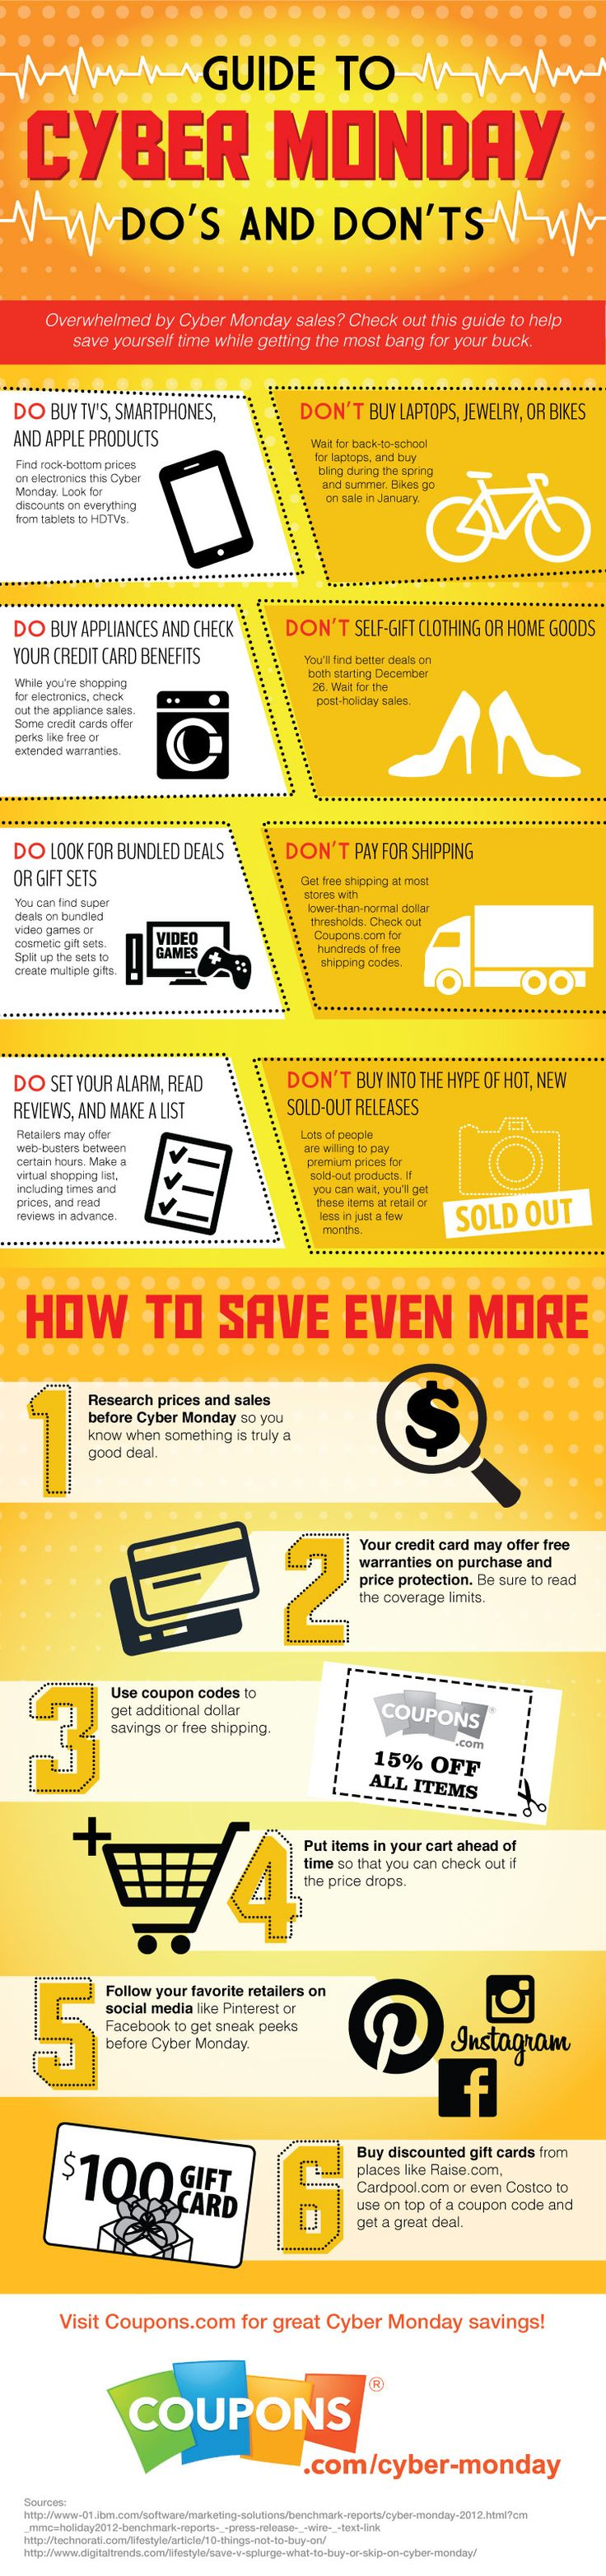 Cyber Monday Infographic: Do's and Don'ts - Coupons.com Blog